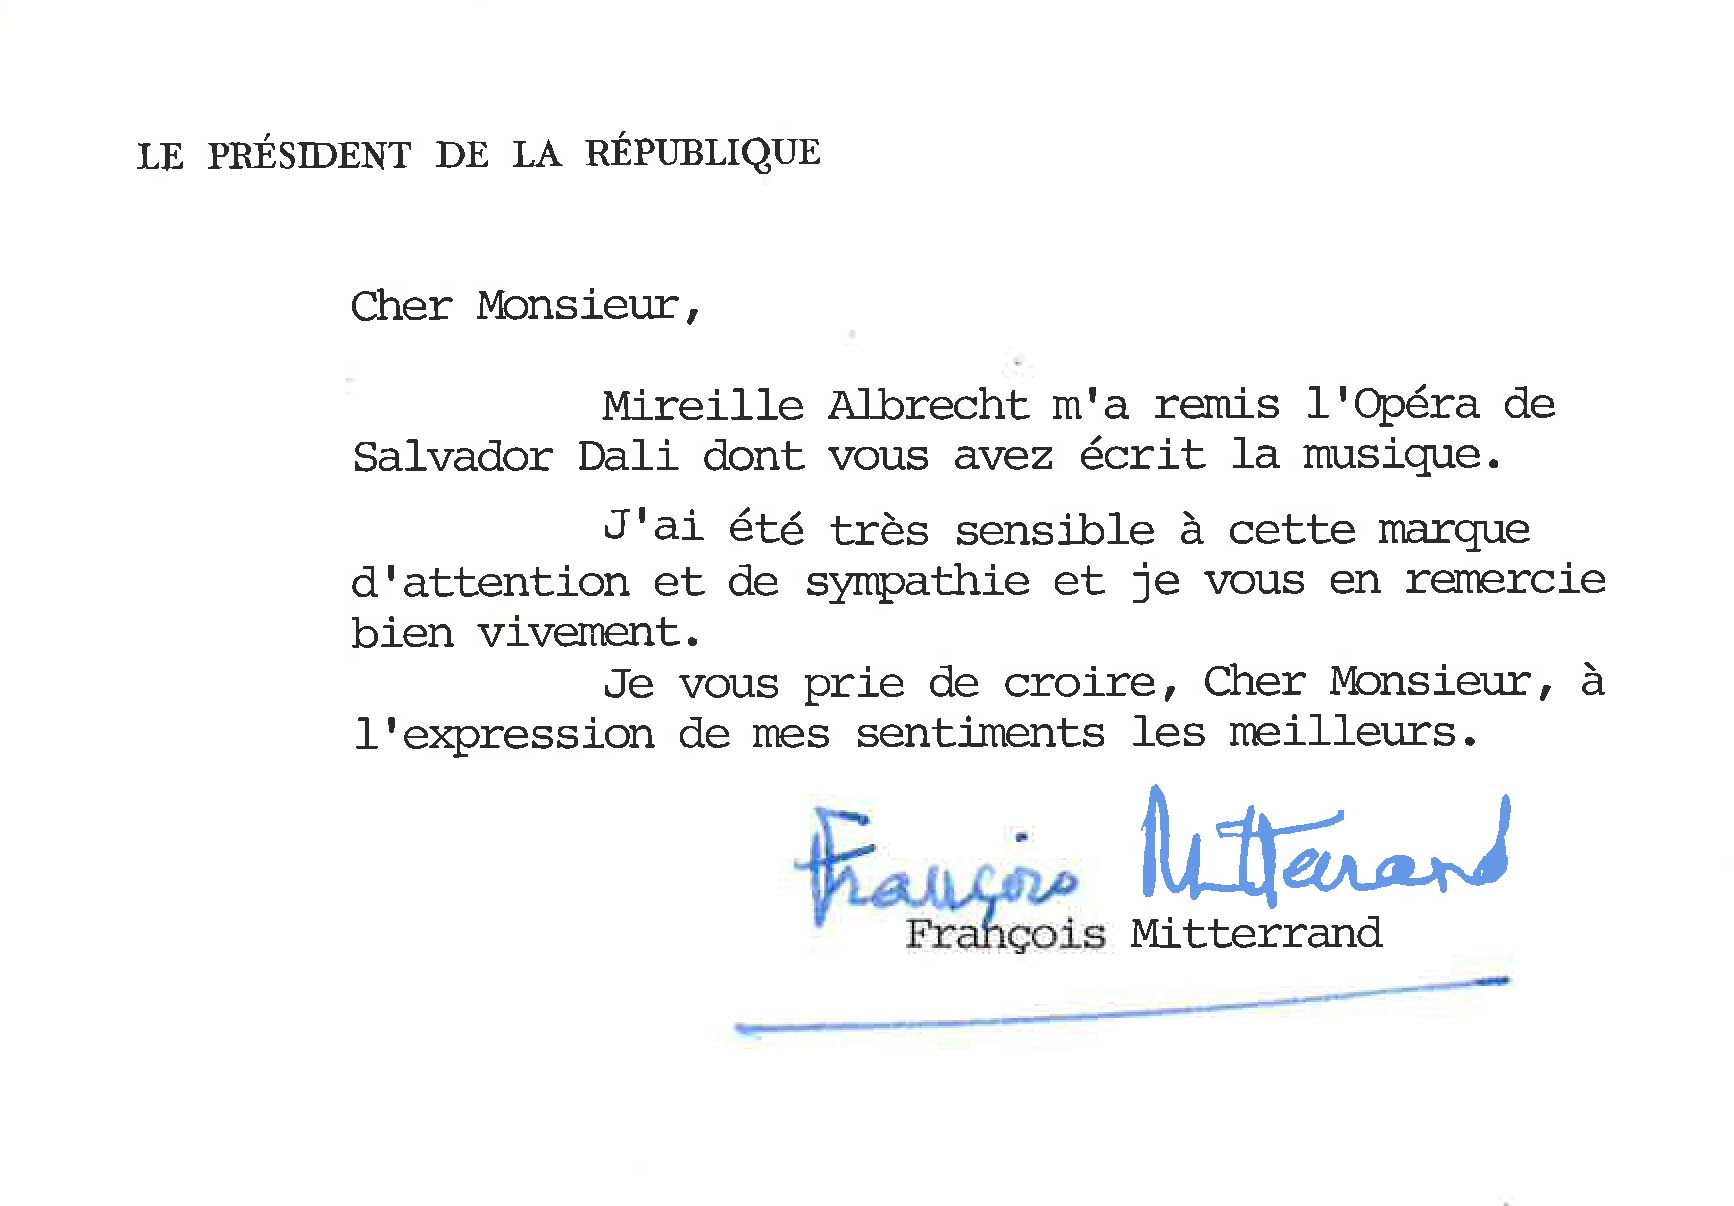 TEXTE FRANCOIS MITTERRAND FRESIDENT OF THE FRENCH REPUBLIC TO IGOR .jpg